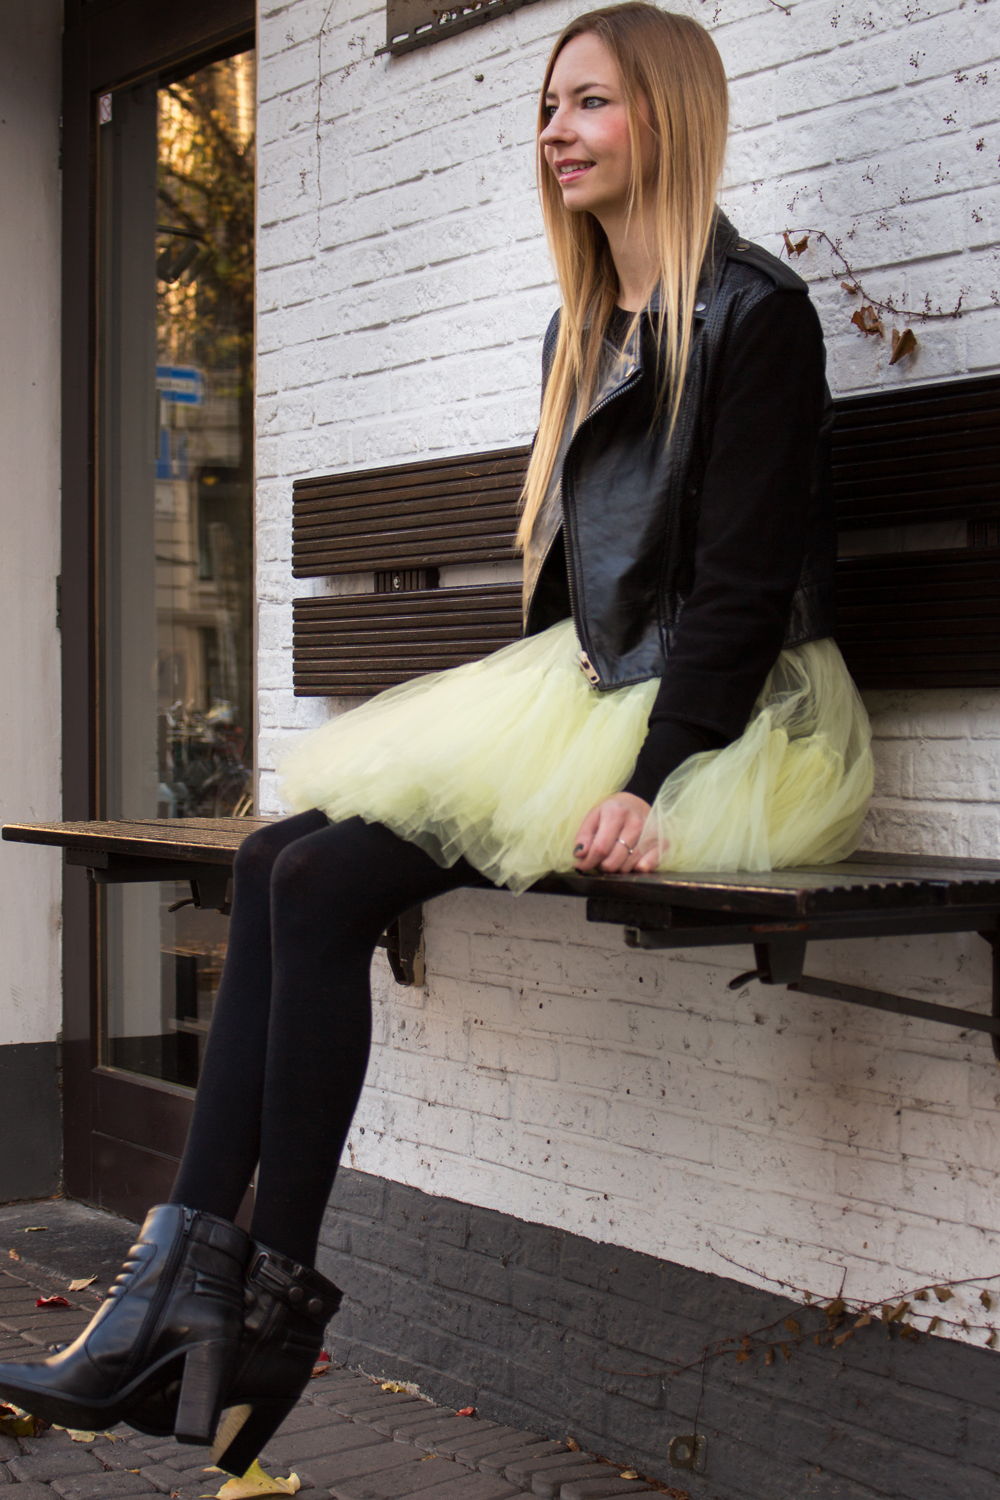 A little bit of Carrie: the tulle skirt